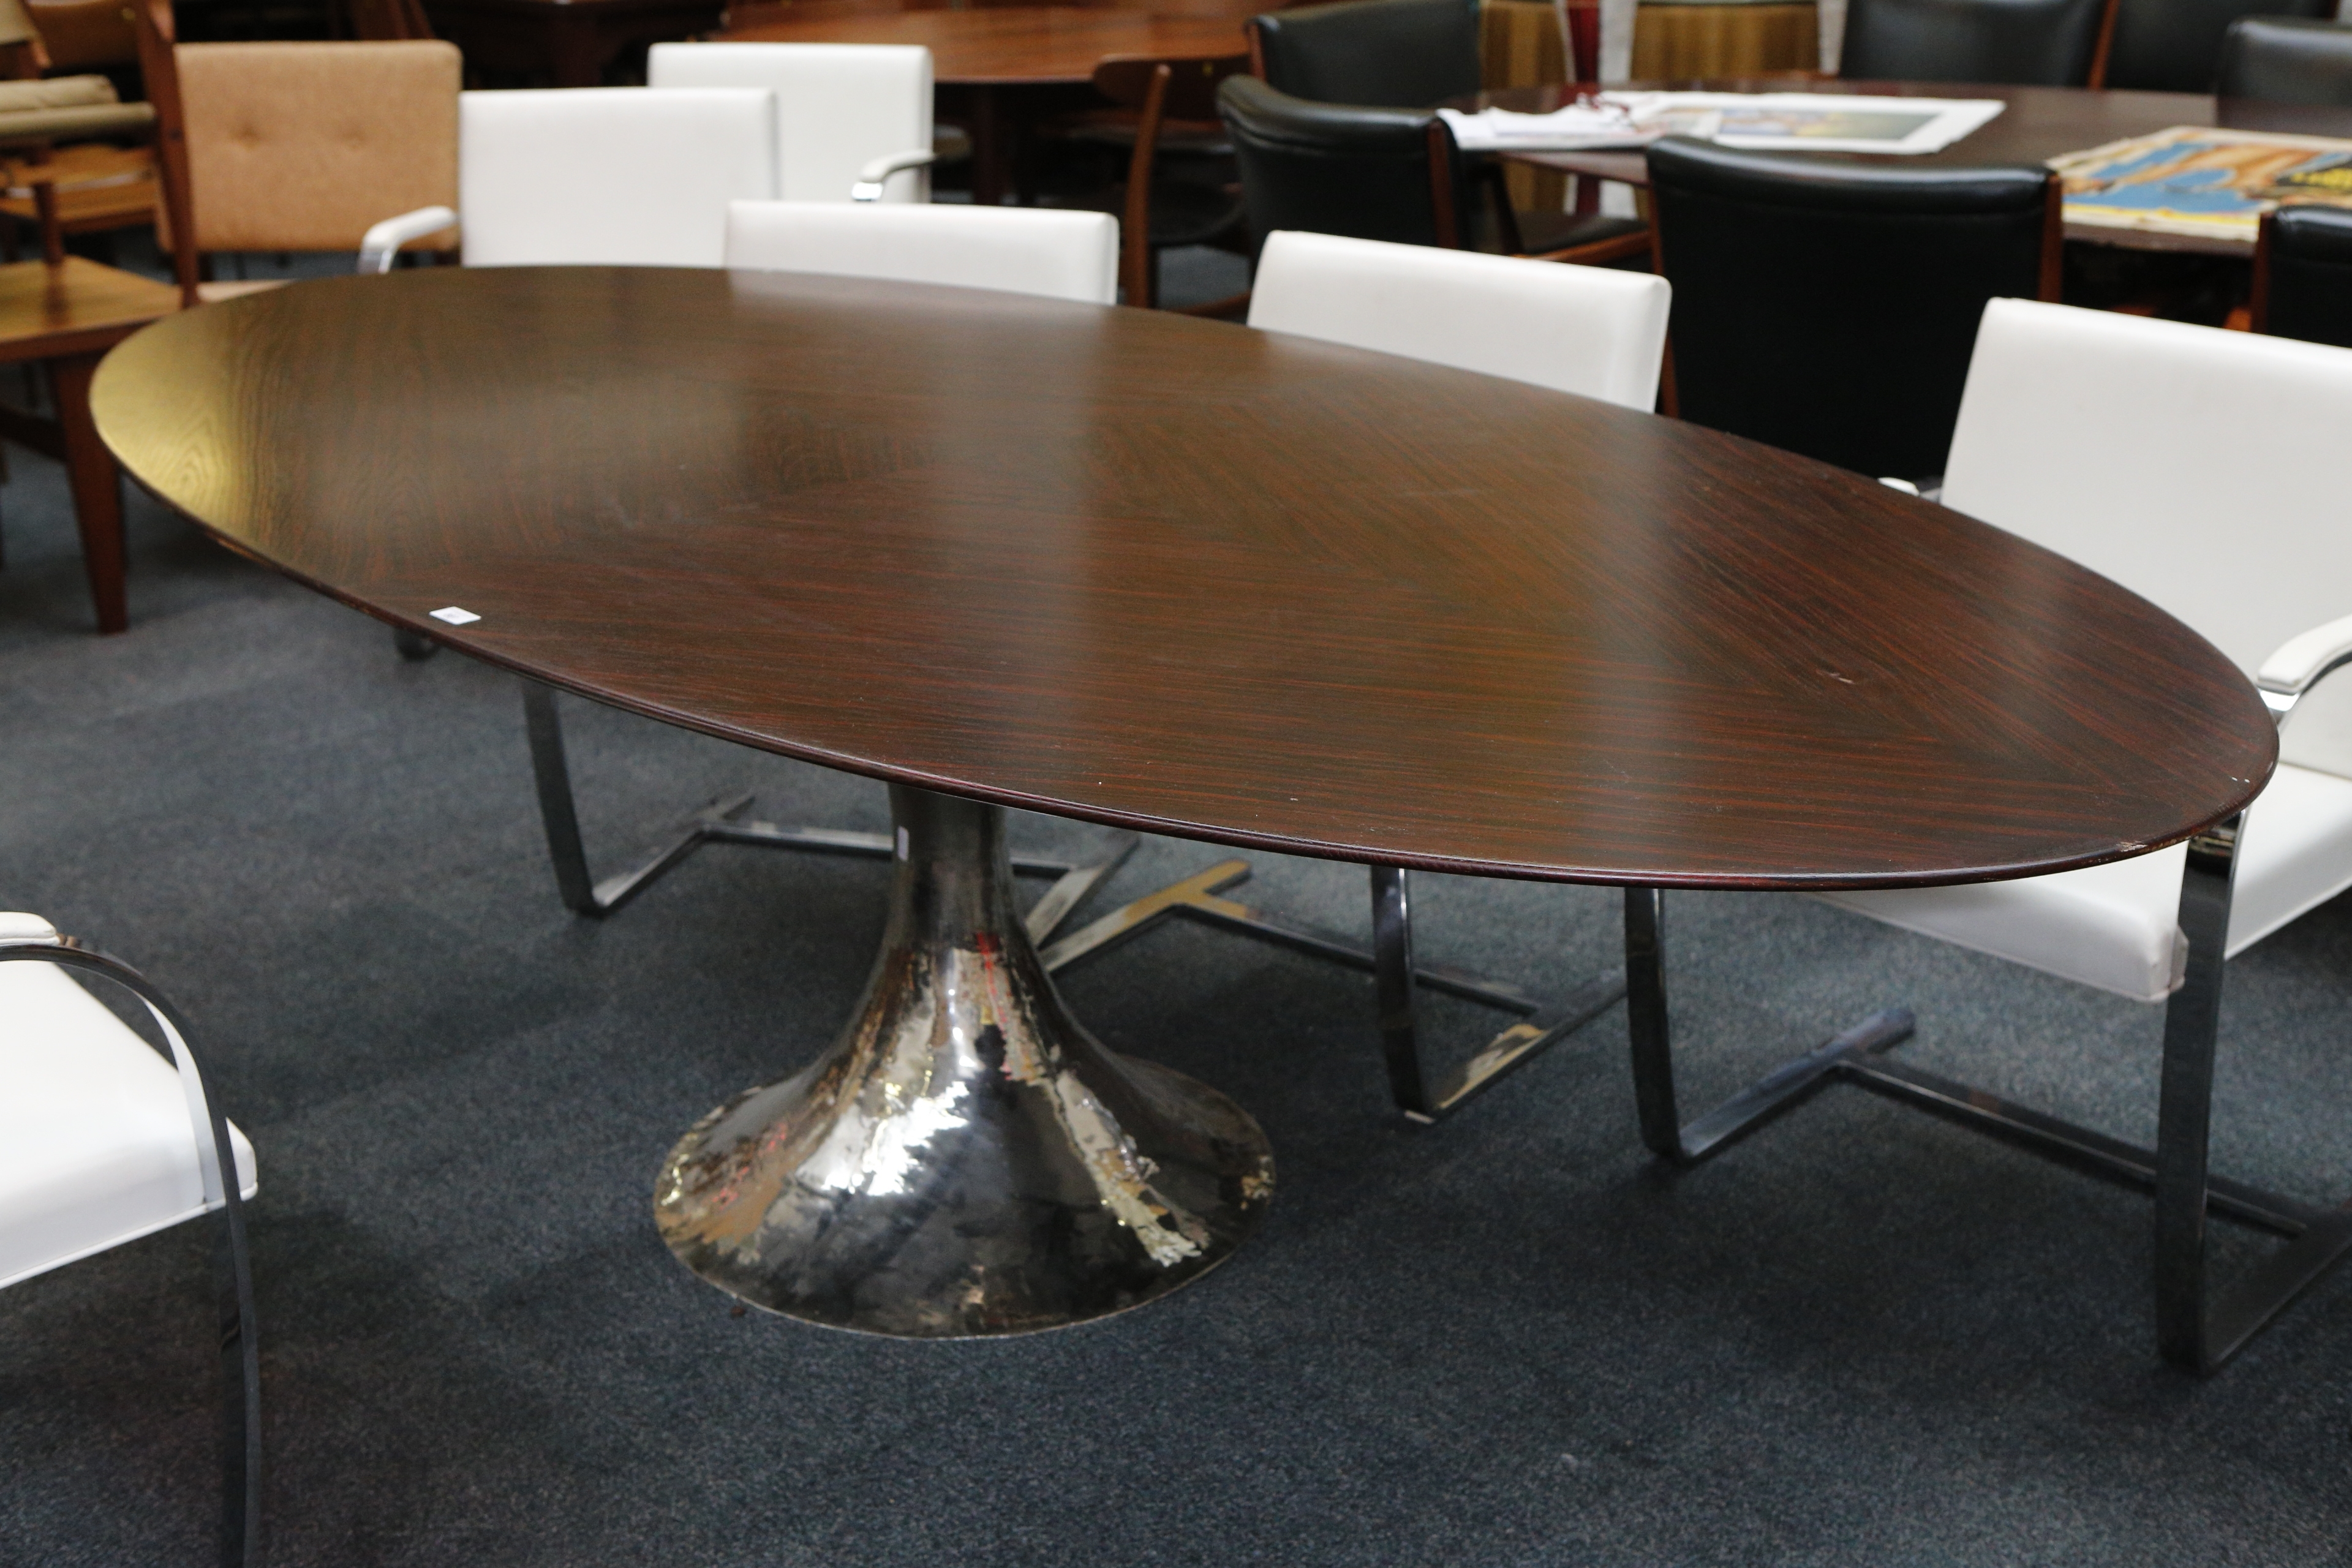 Current Chichester Dining Tables In A Julian Chichester Dakota Dining Table, 21St Century, Elliptical (View 15 of 25)